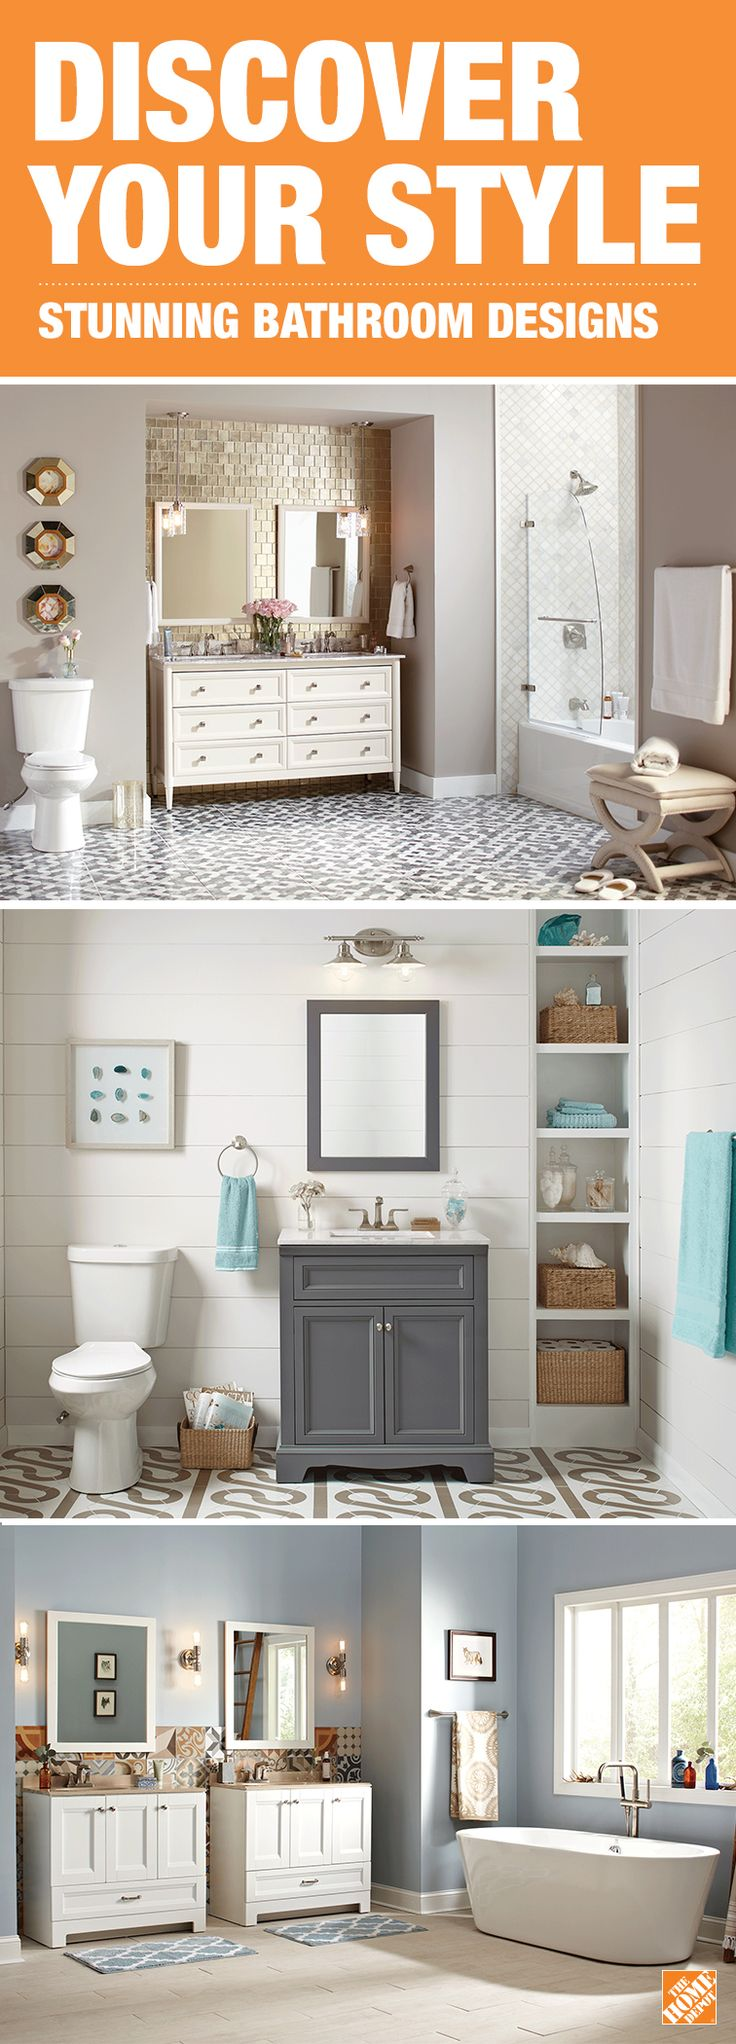 441 best Bathroom Design Ideas images on Pinterest | Bathroom ideas ...